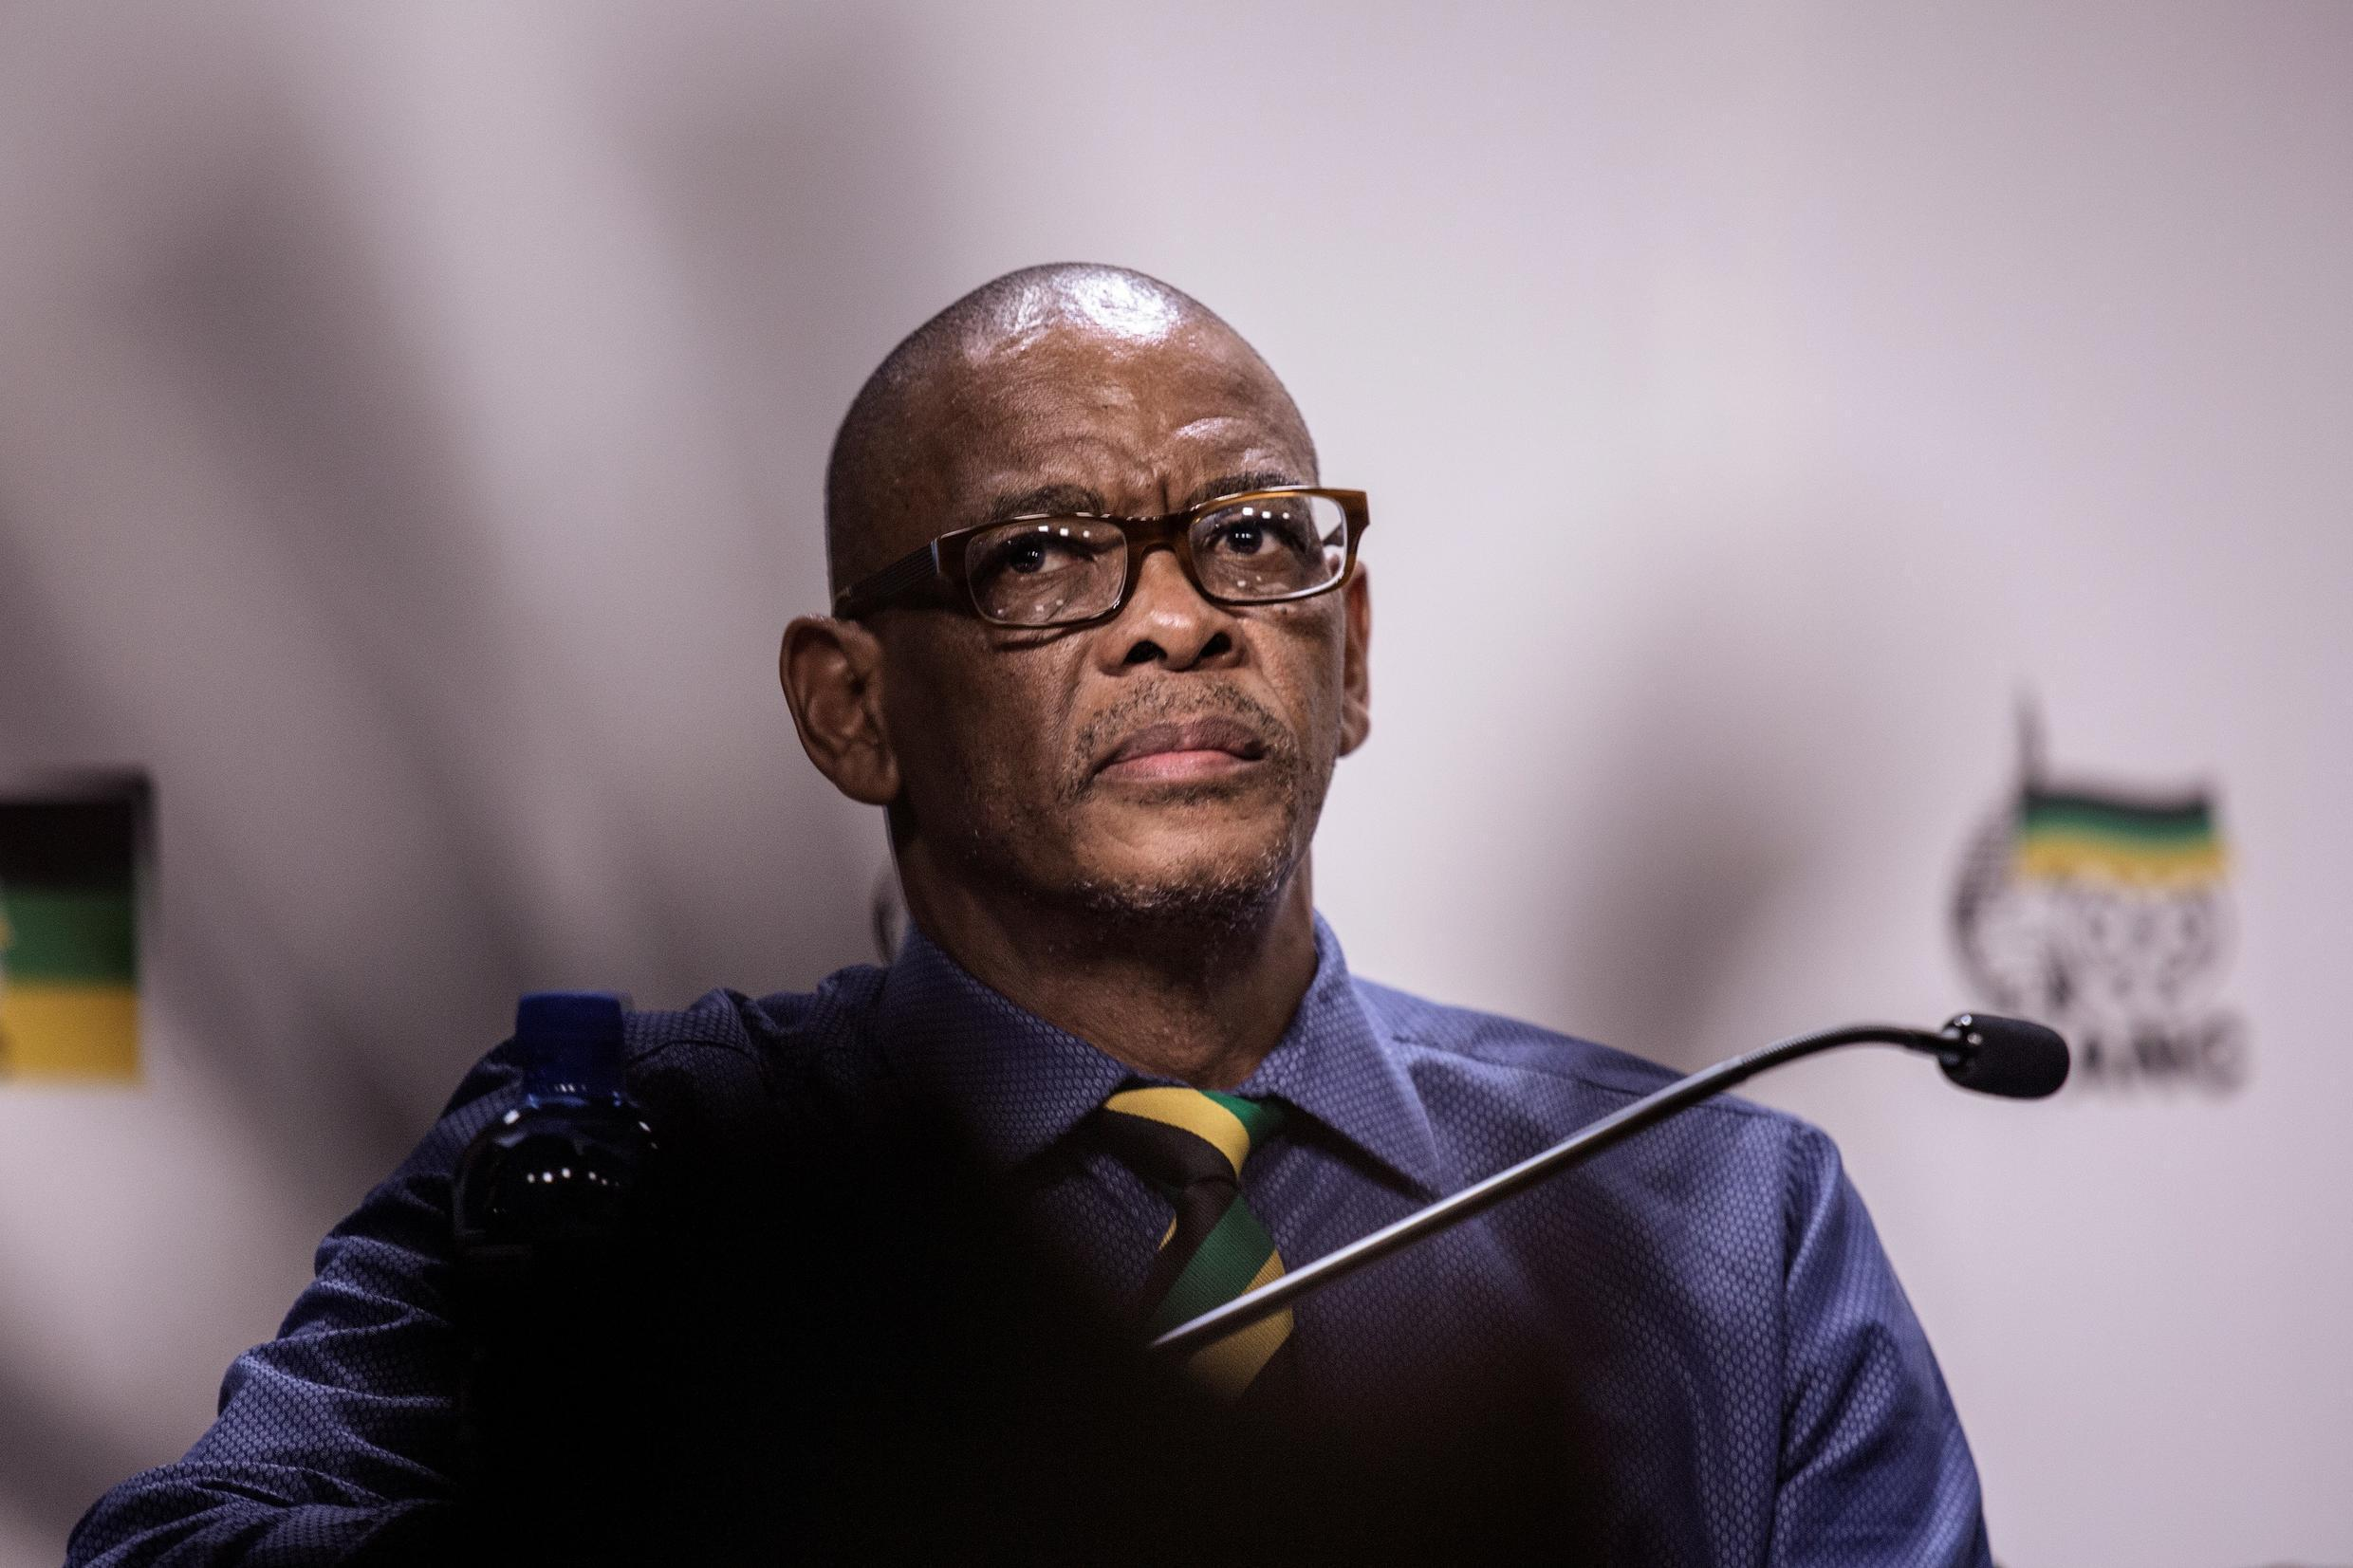 Ace Magashule, ANC's secretary general, is considering taking legal action against journalist Pieter-Louis Myburgh over a book alleging he is involved in corrupt activities.